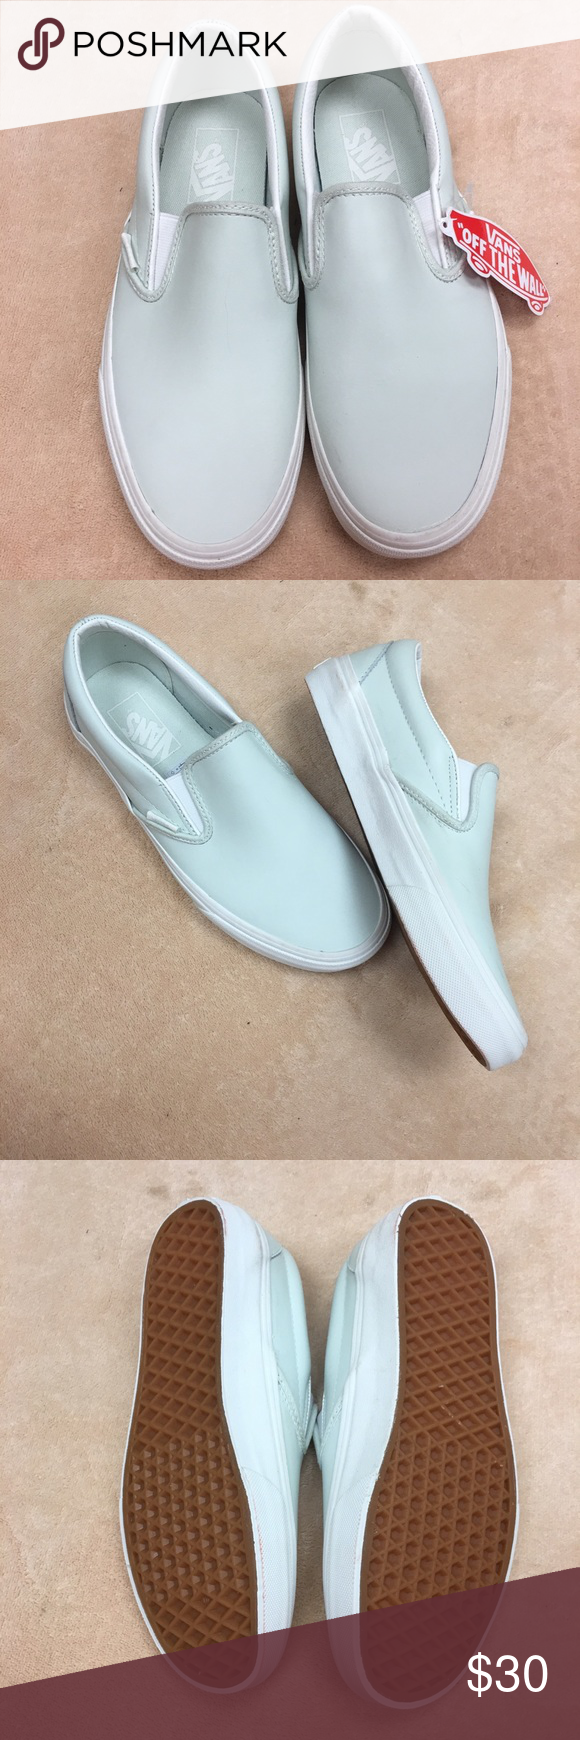 20e7ba83fa6a Vans Leather Slip On Ladies leather Vans sturdy low profile slip on leather  uppers